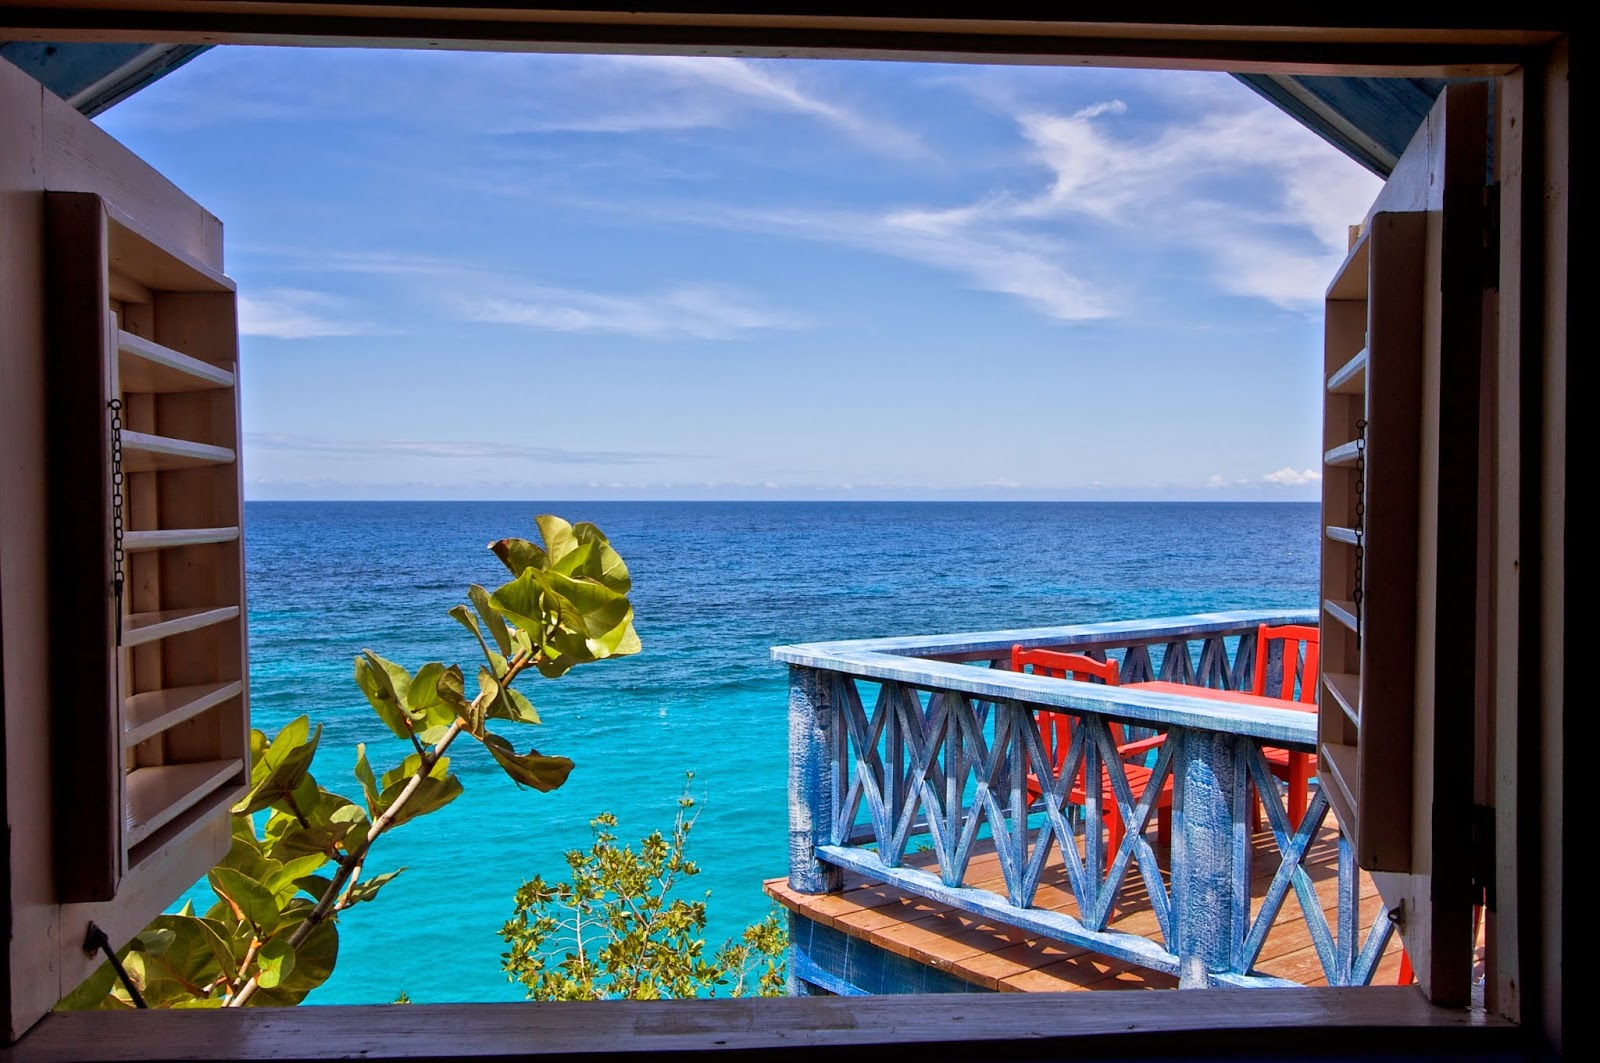 Technology Management Image: Travel & Adventures: Jamaica. A Voyage To Jamaica